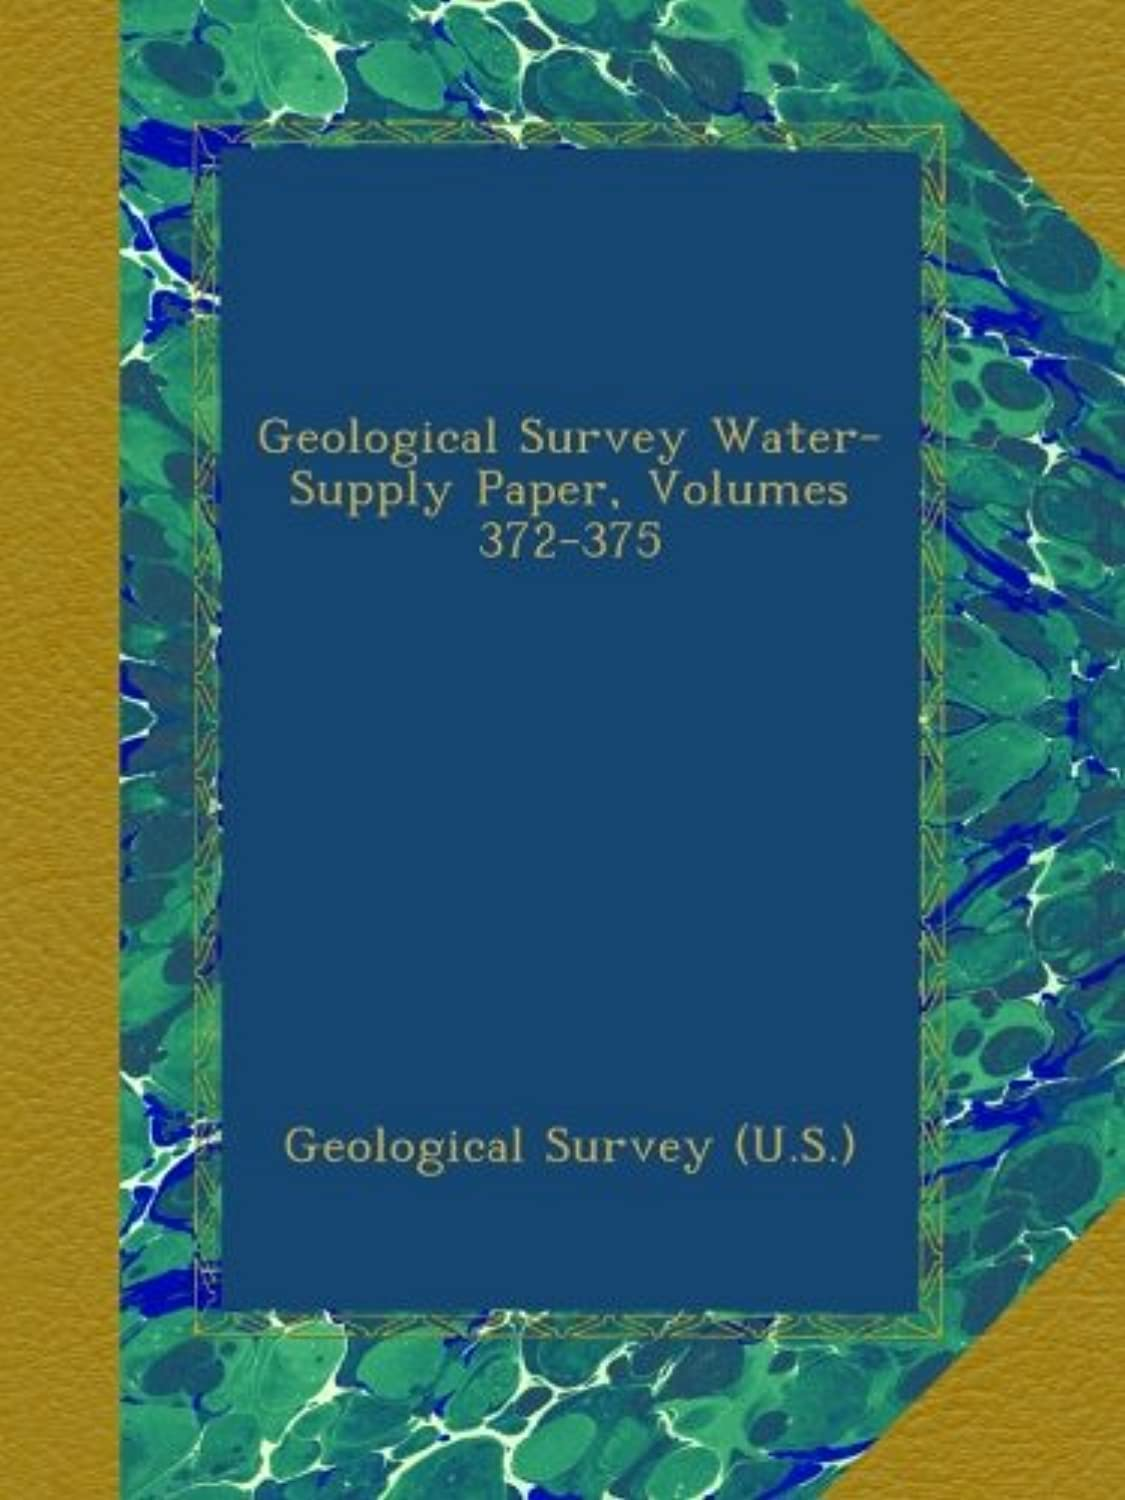 Geological Survey Water-Supply Paper, Volumes 372-375